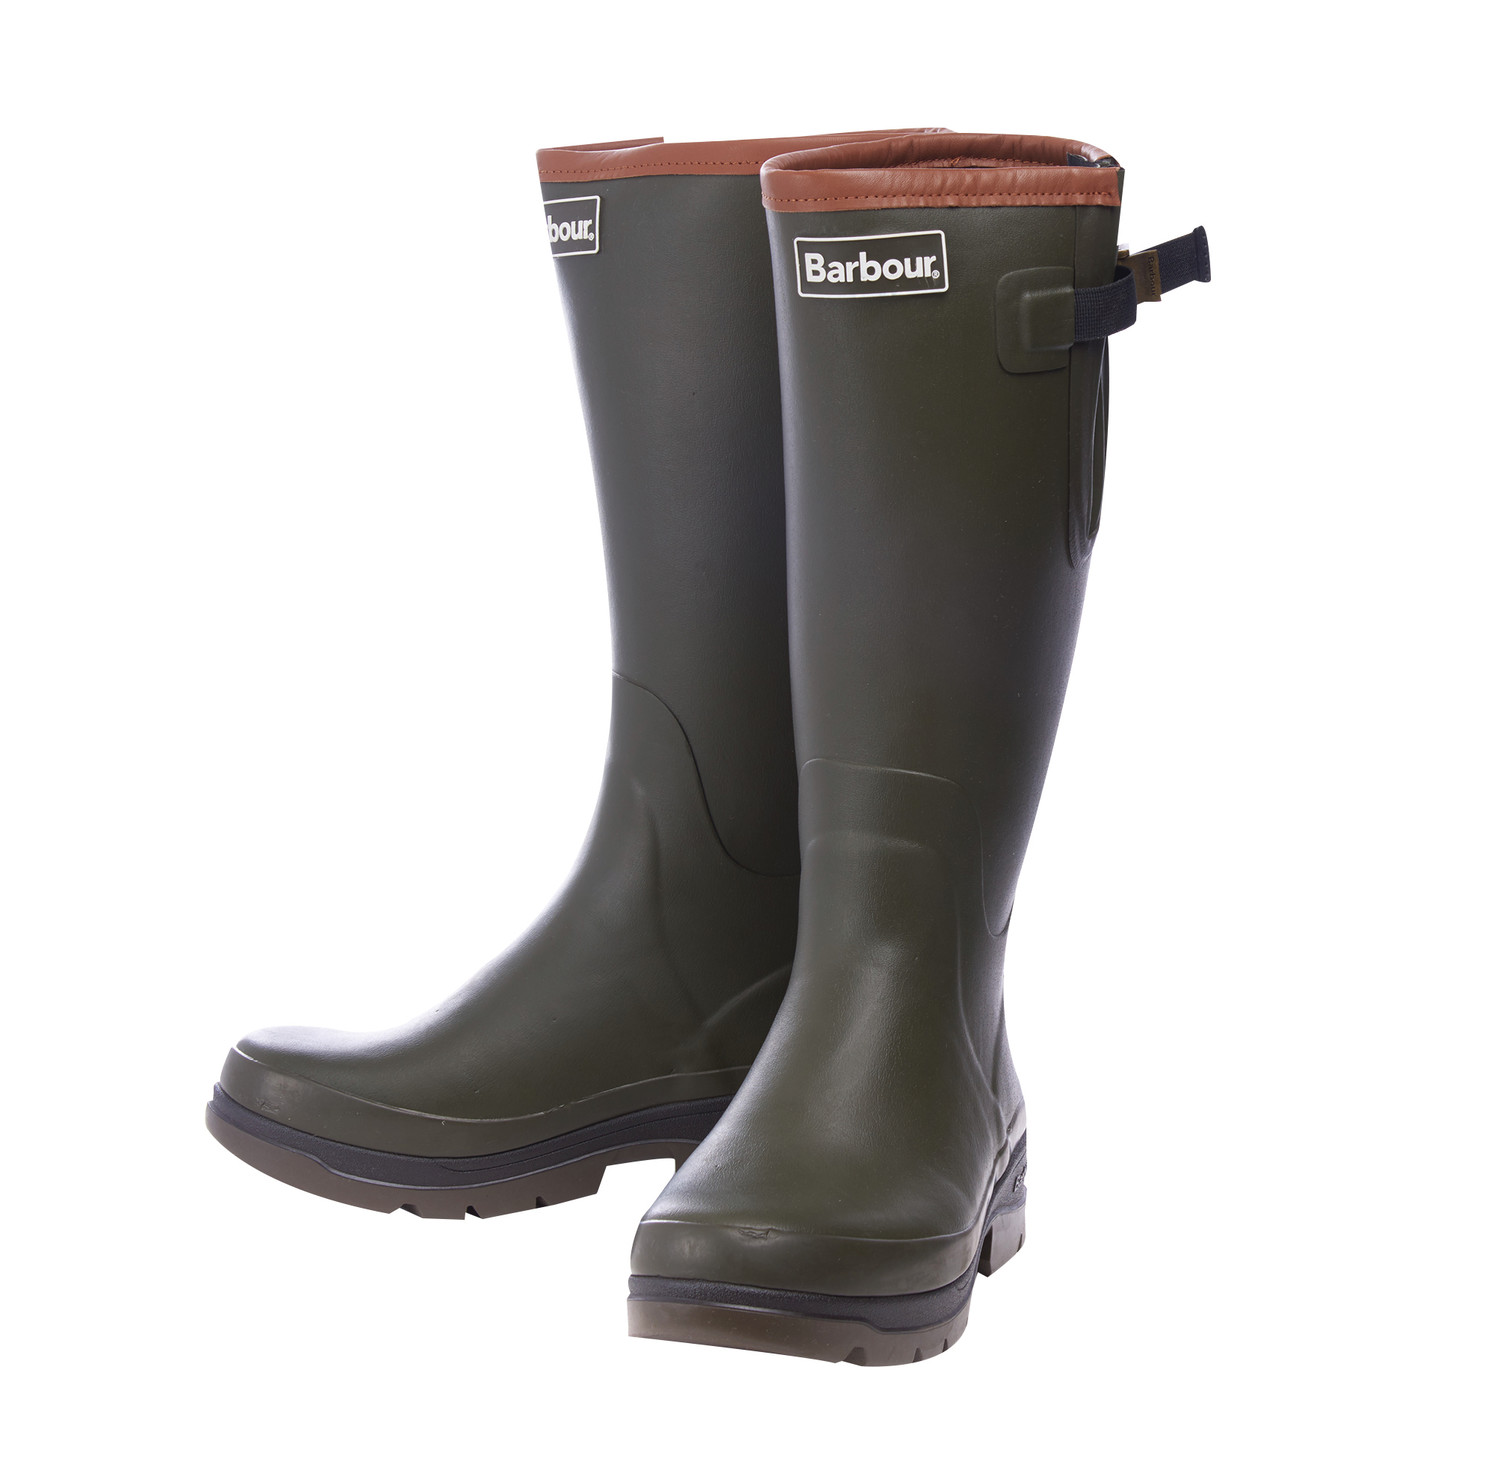 Barbour Tempest Wellington Boots